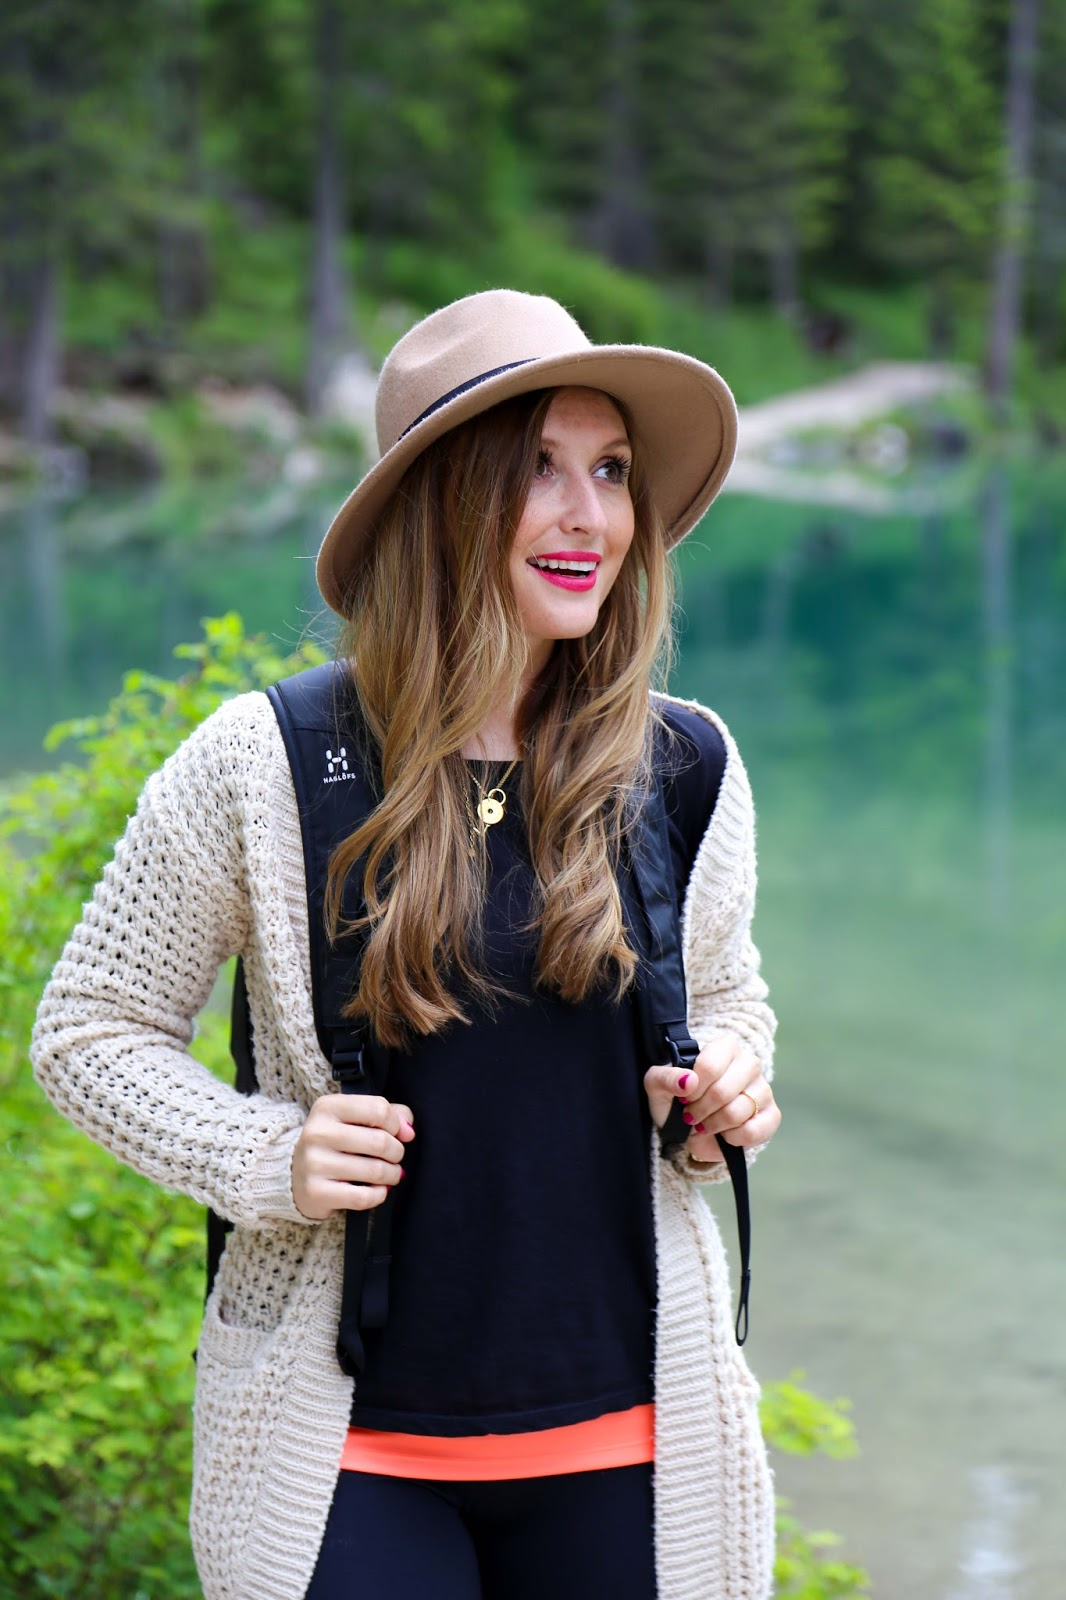 Fashionstylebyjohanna - Südtirol - Fedora Hut - Blogger - Austria - Outdoorblogger - Haglofs - Best mountain Artists